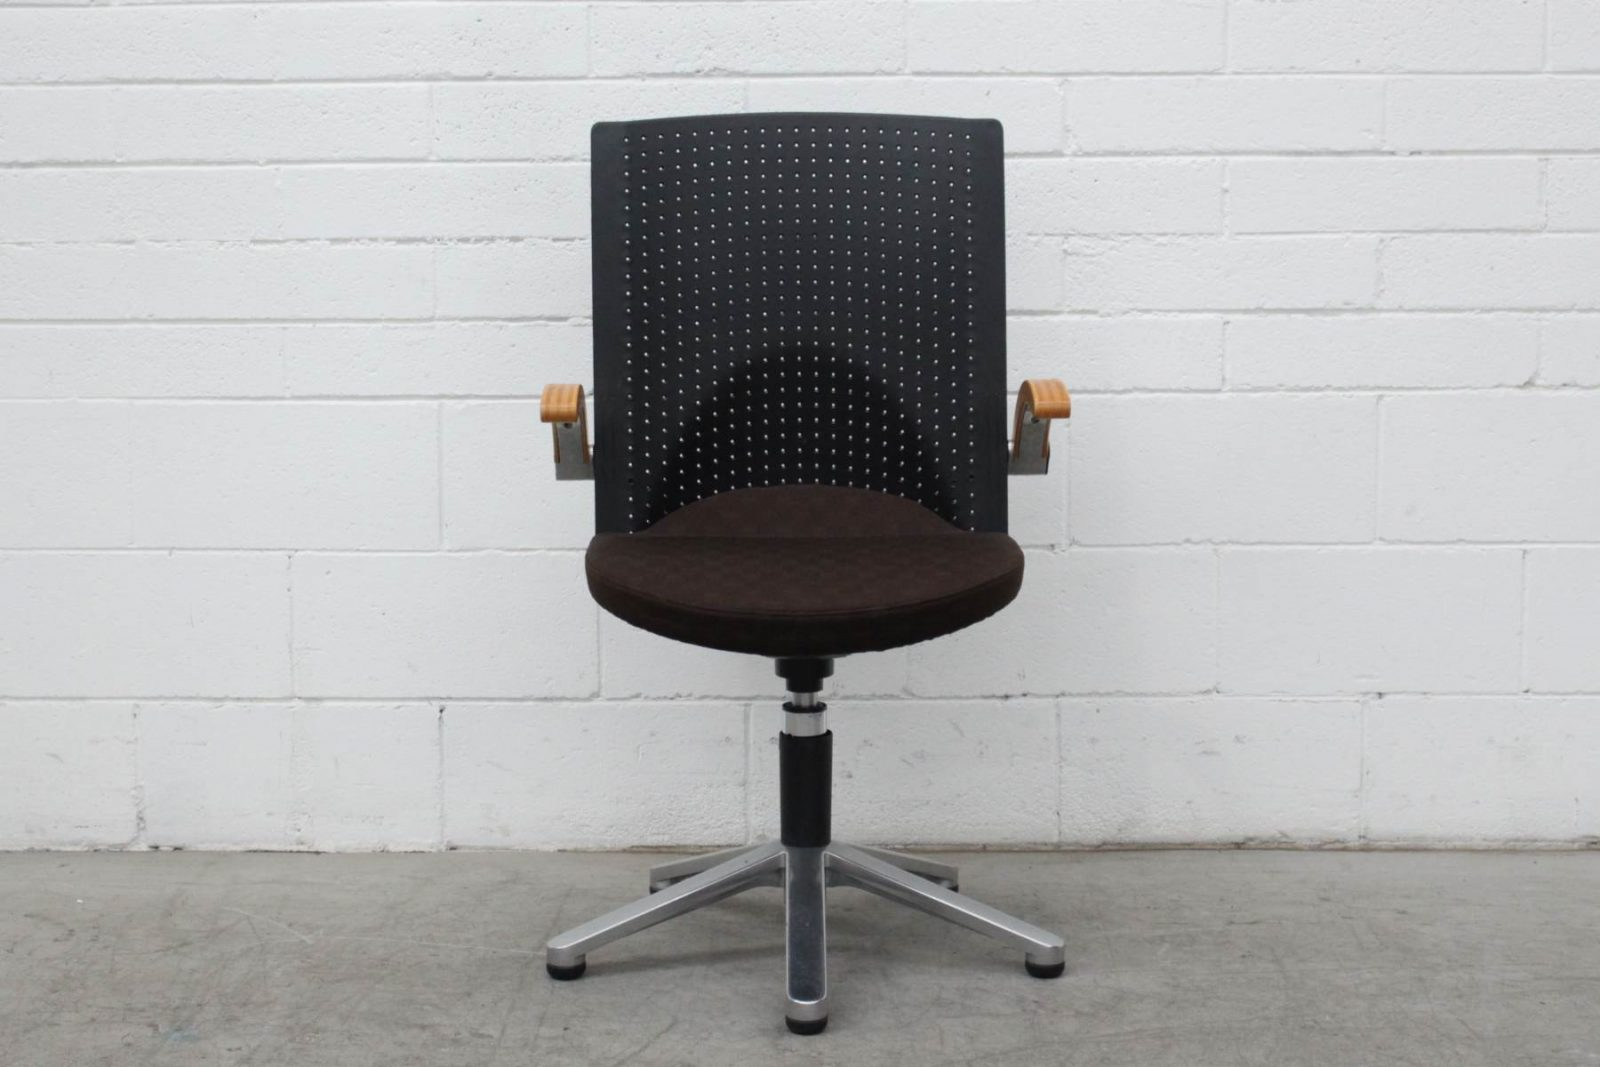 Picto swivel chair by Wilkhahn